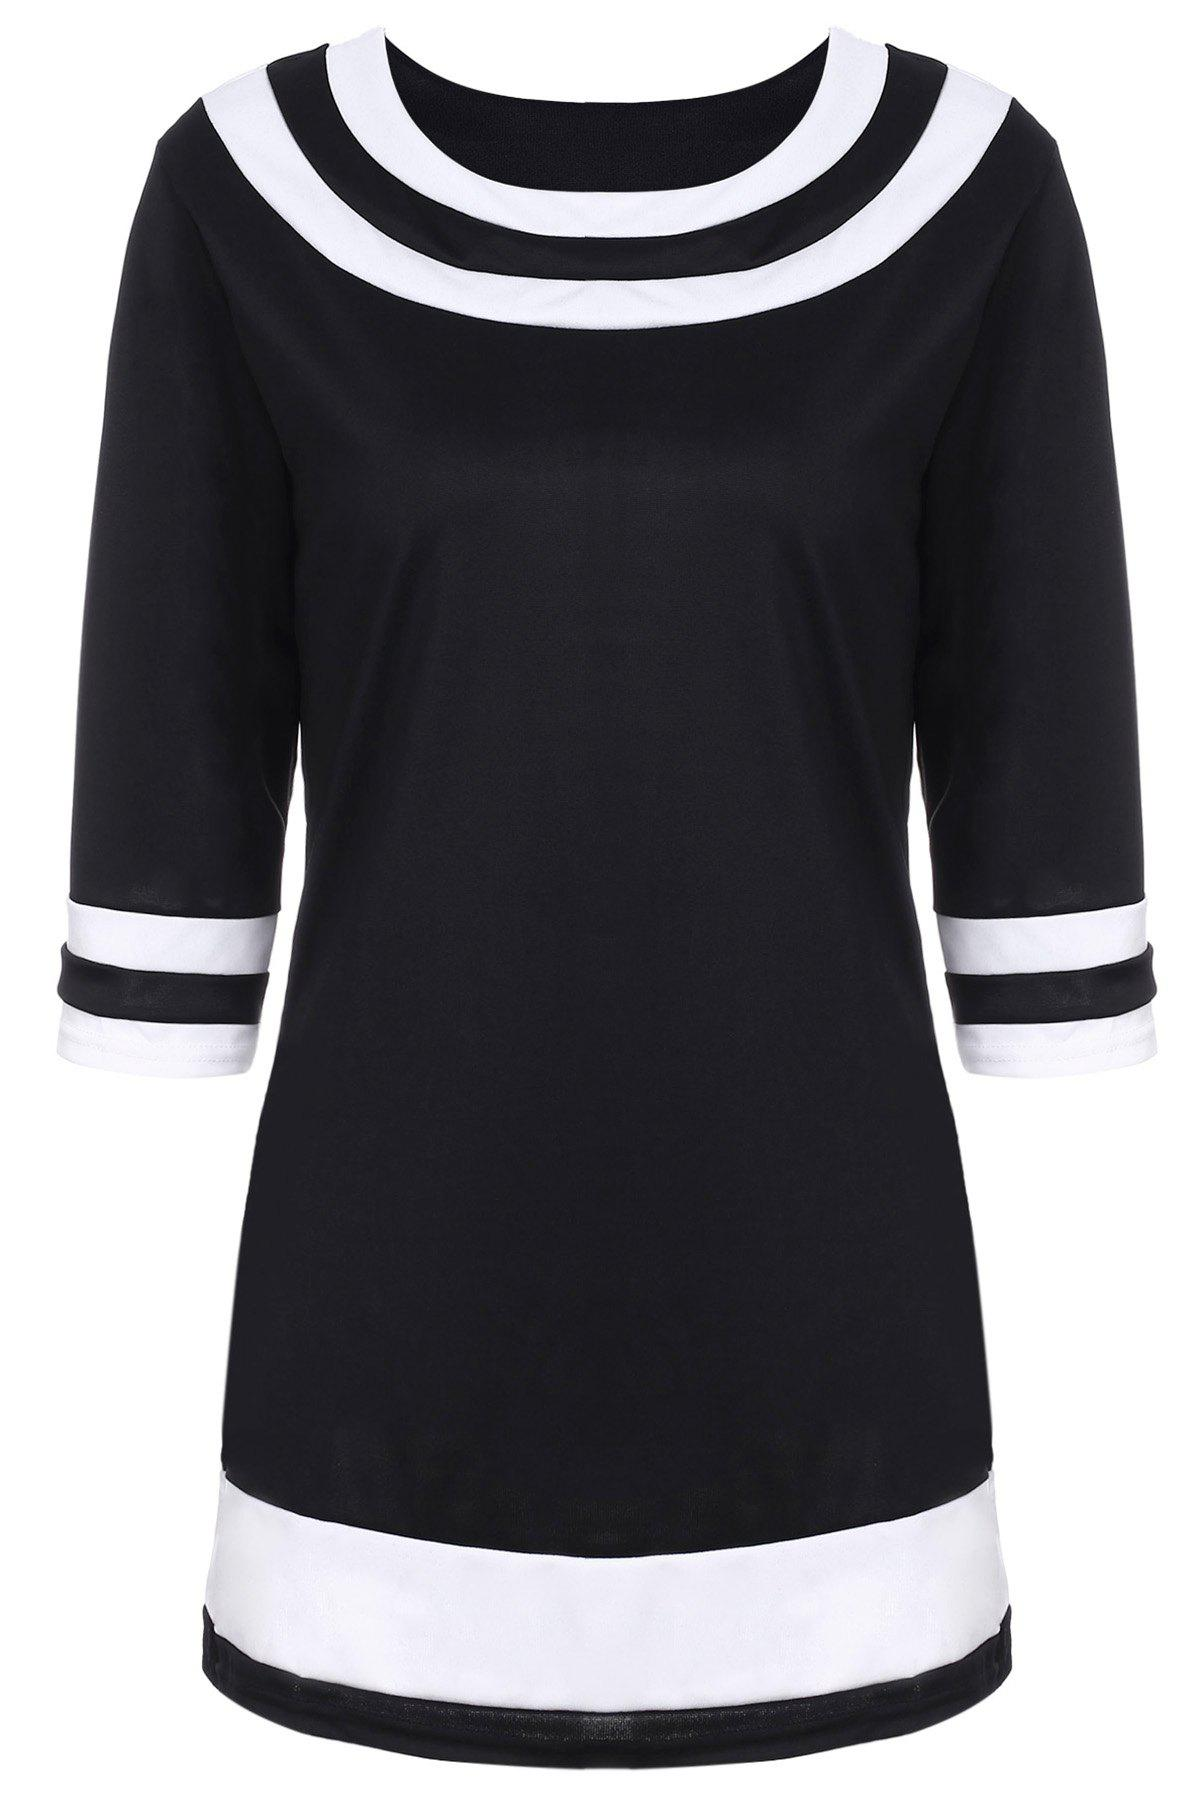 Brief Color Spliced Round Collar 3/4 Sleeve Dress For Women - BLACK L